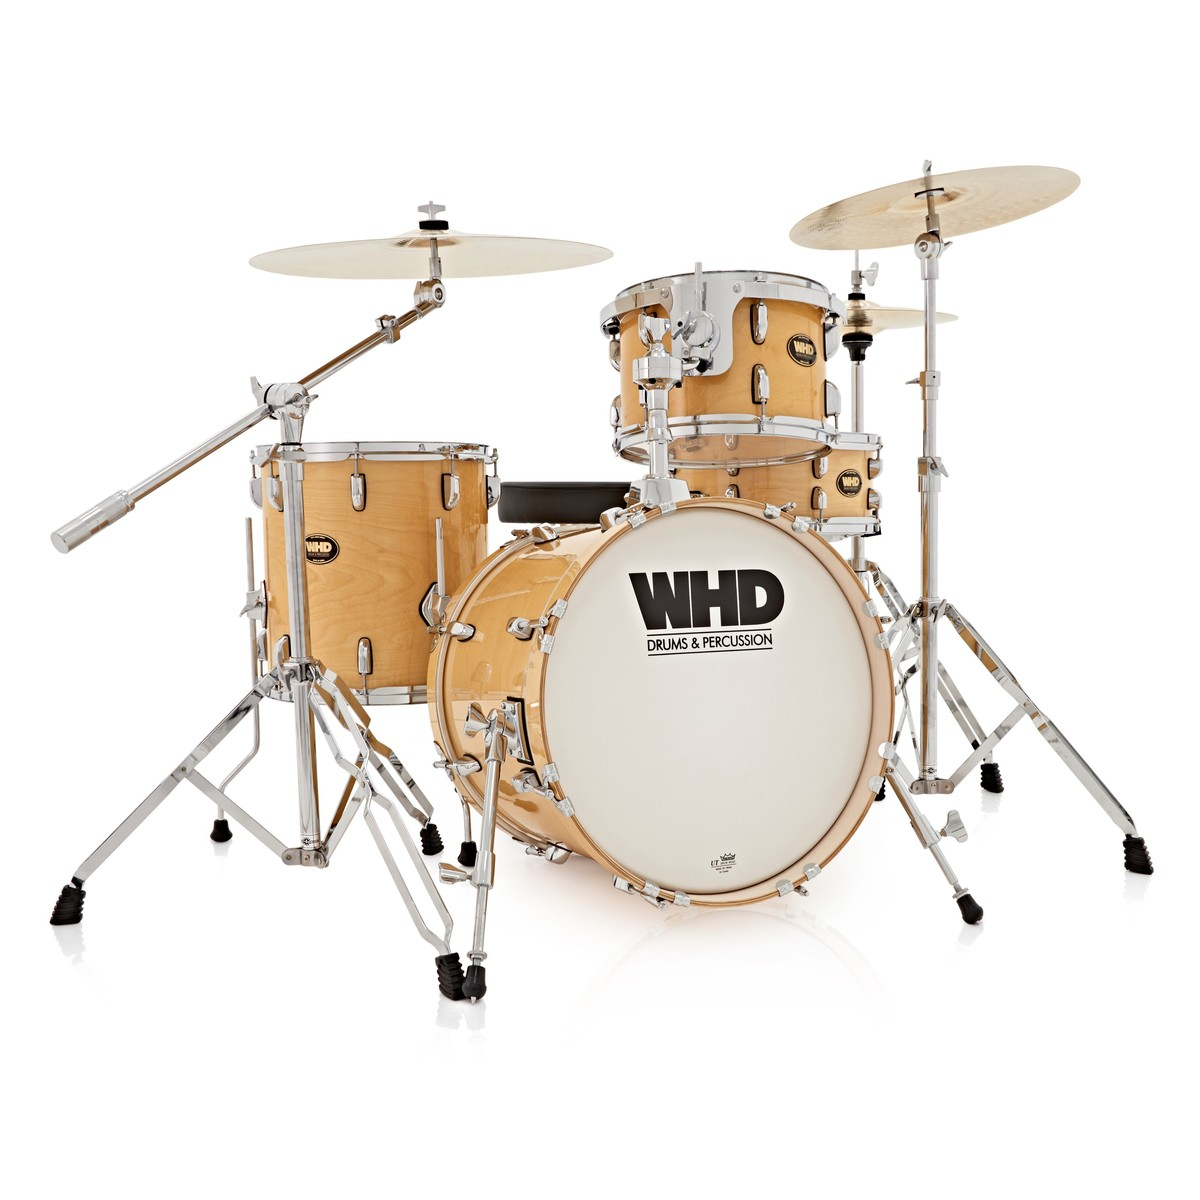 whd birch 4 piece jazz complete drum kit natural at gear4music. Black Bedroom Furniture Sets. Home Design Ideas